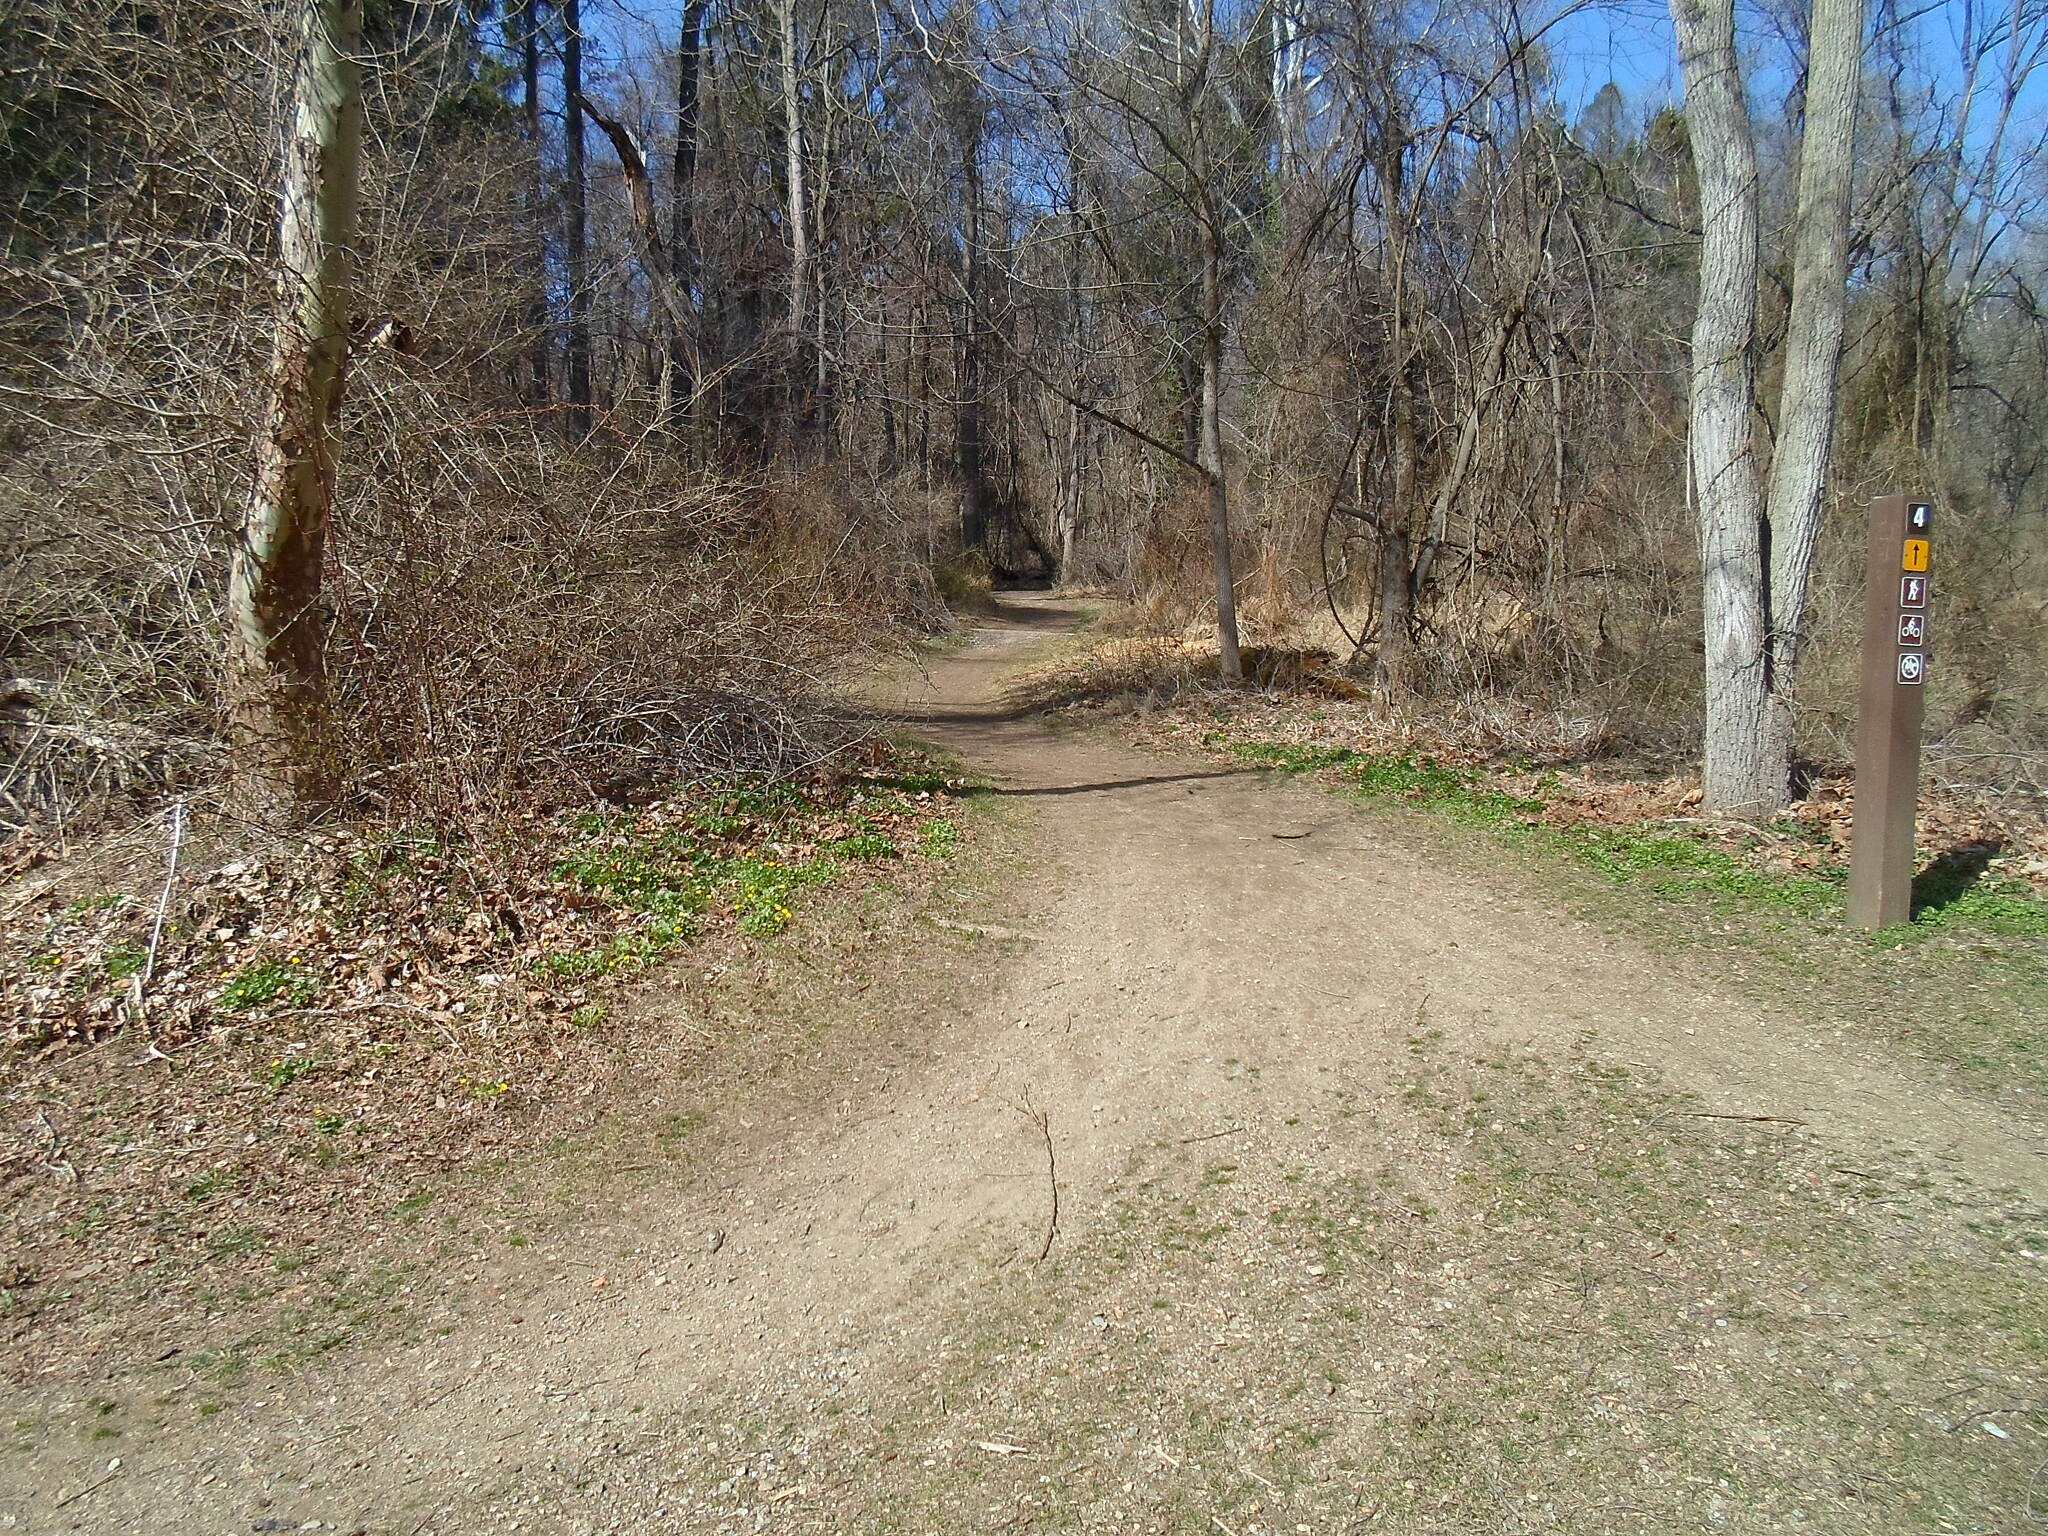 East Branch Brandywine Trail East Branch Brandywine Trail Immediately east of the Brandywine, two dirt paths branch off the main greenway. These paths are best suitged for mountain bikes and those desiring a more challenging hike.